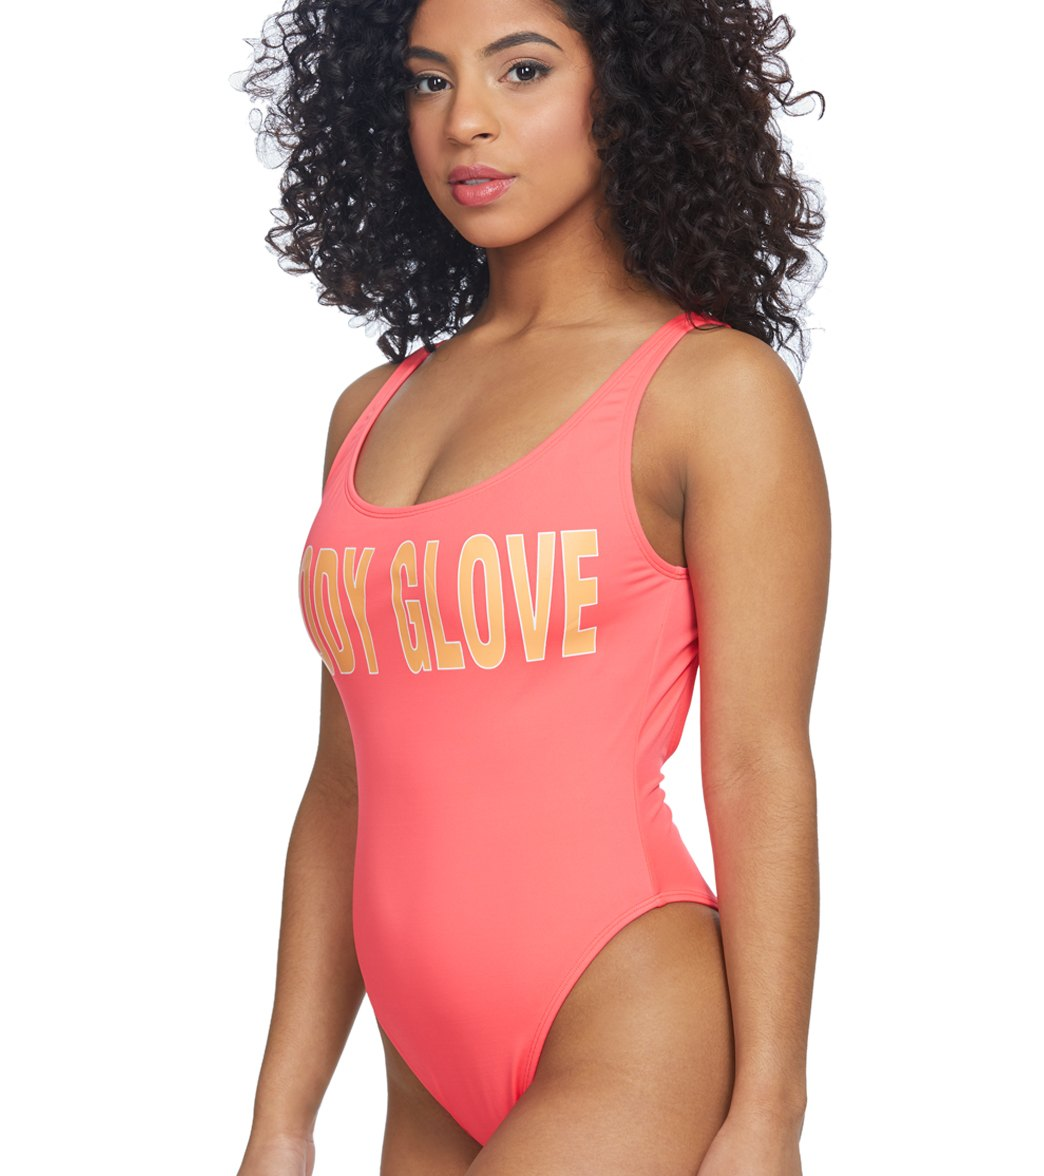 af70ec0aff2 Body Glove 80 s Throwback The Look One Piece Swimsuit at SwimOutlet ...